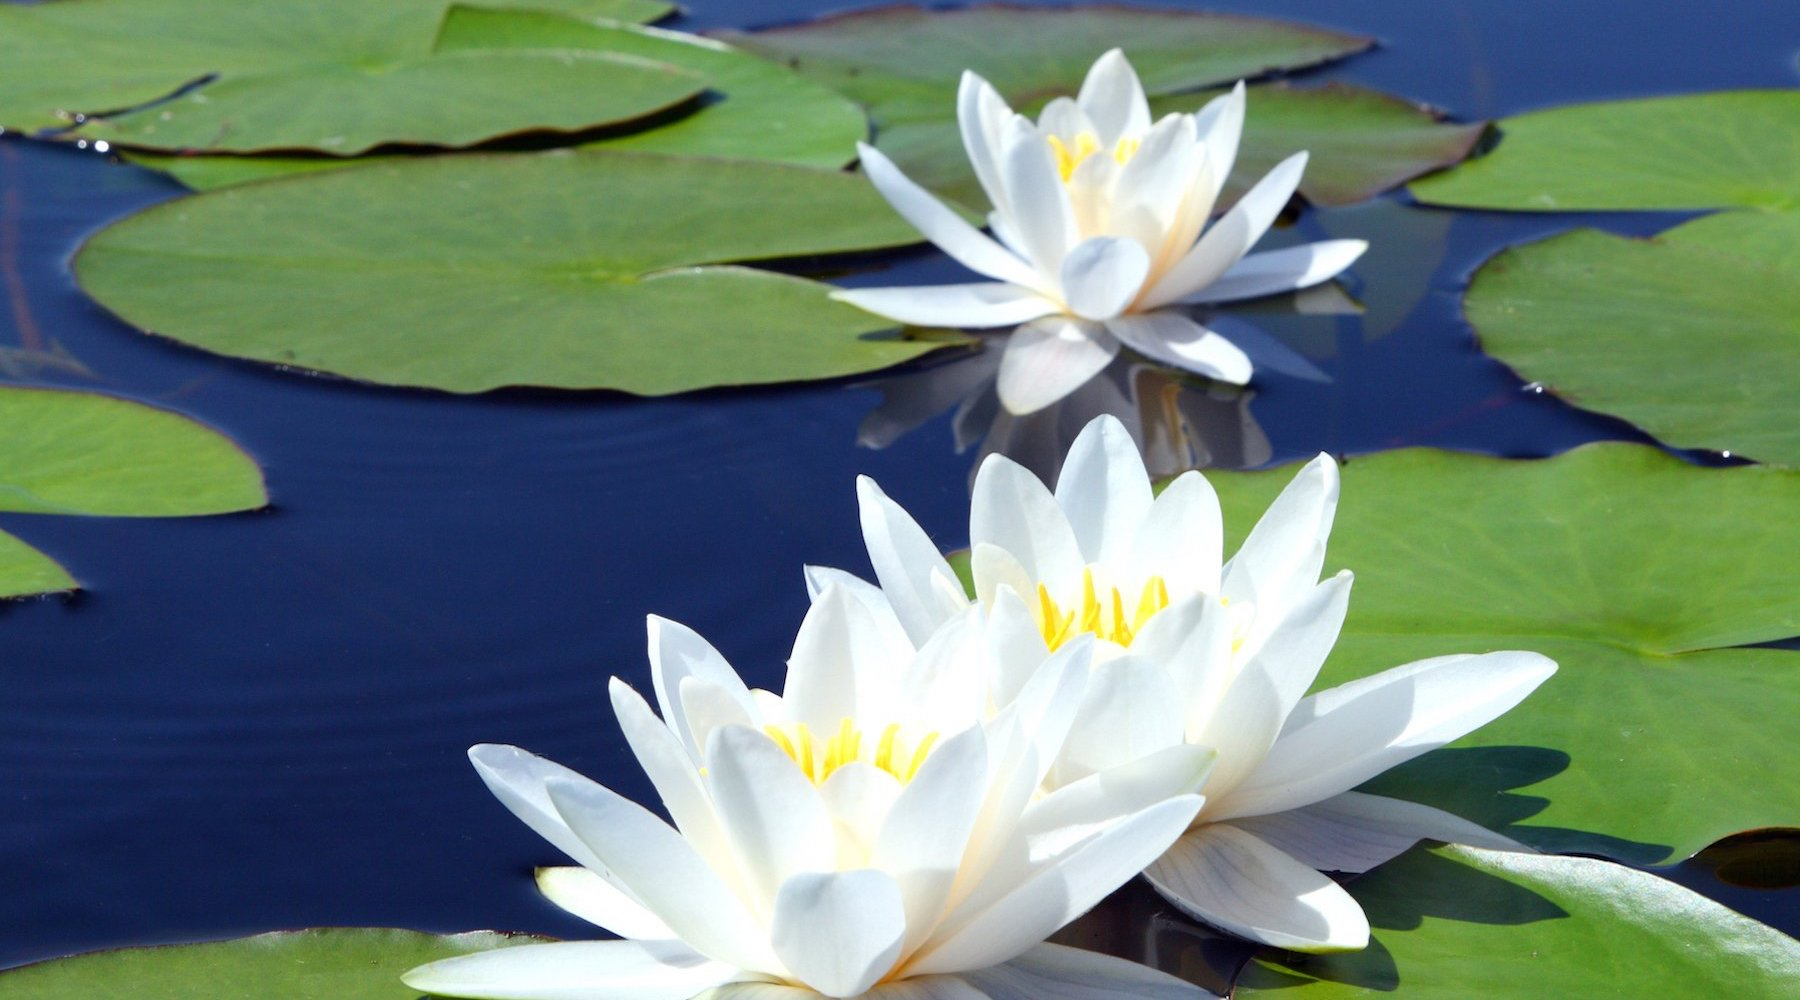 {WHITE WATER LILY} SHARPENED SENSES. ACUITY OF VISION. SYNCHRONICITY.